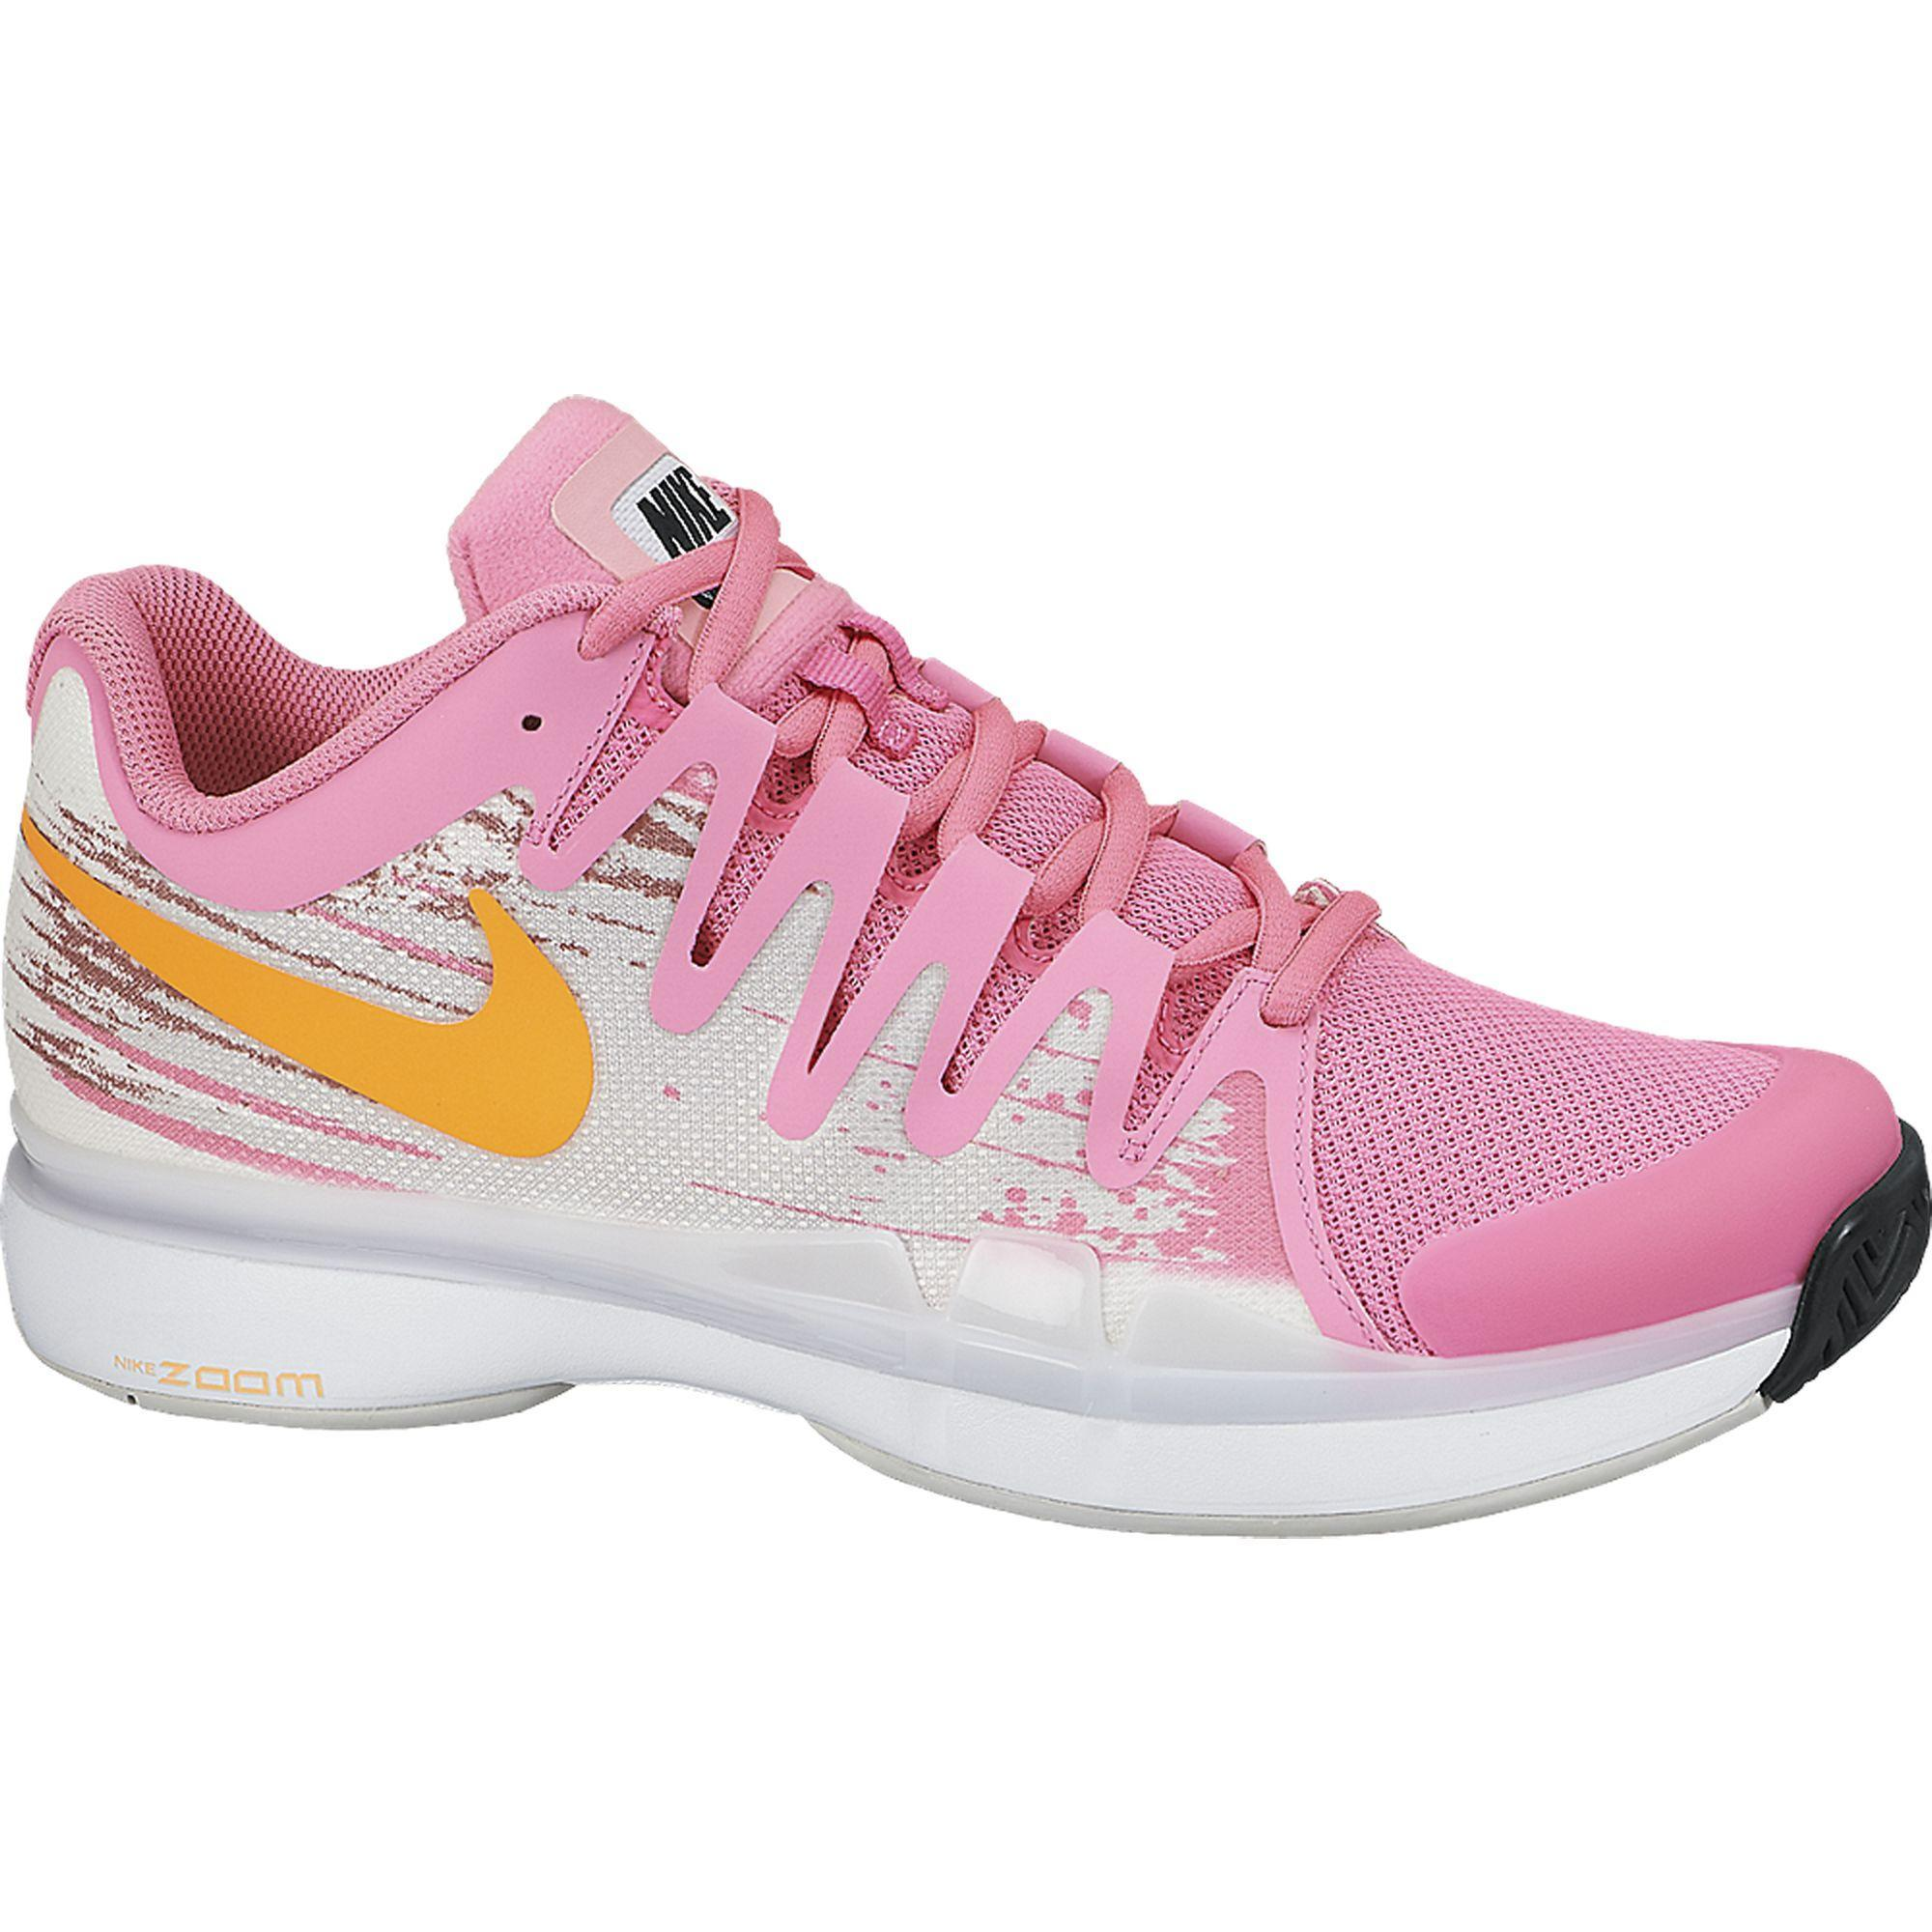 Perfect Check Out The Full Look At The Upcoming Nike Tennis US Open 2014 Sneakers For The Nike Athletes Like Rafa Nadal, Roger Federer, Serena Williams, Maris Sharapova And Others The Mens And Womens Footw